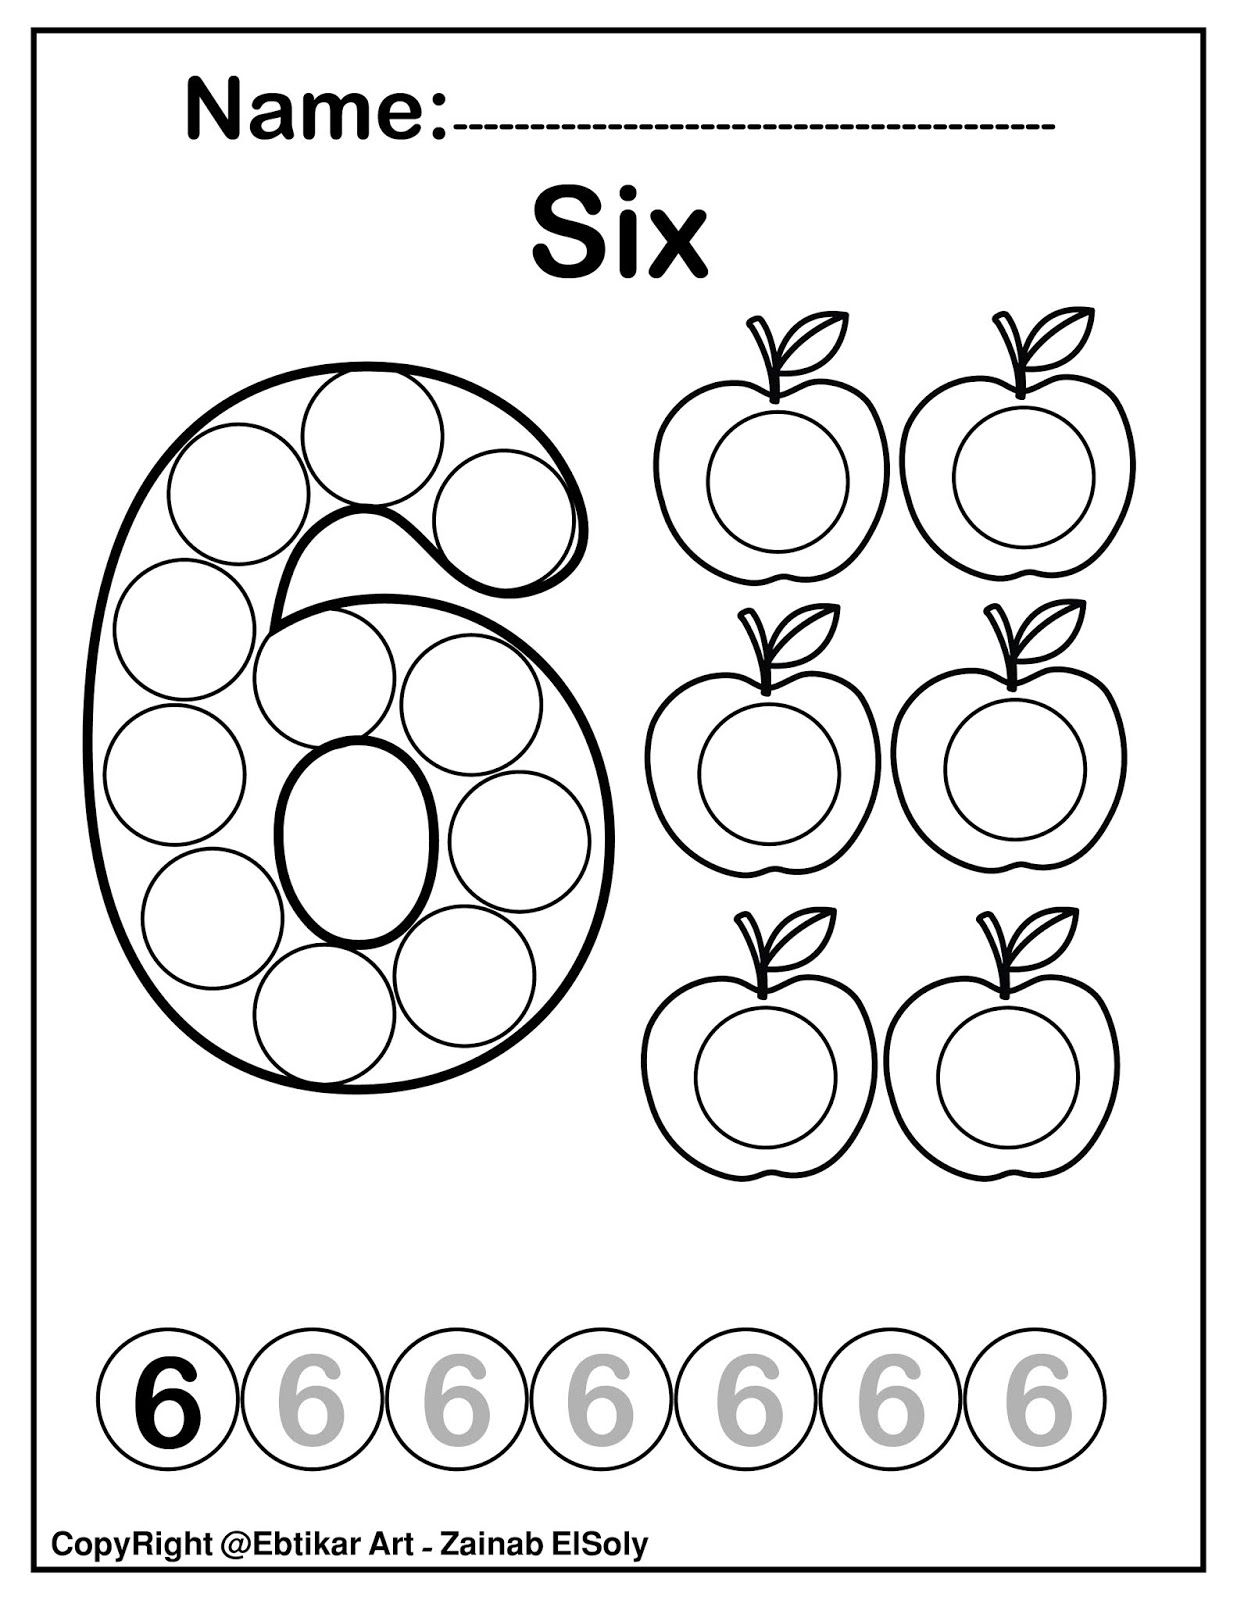 Set Of 123 Numbers Count Apples Dot Marker Activity Coloring Pages For Kids Dot Marker Activities Dot Markers Numbers Preschool Printables [ 1600 x 1237 Pixel ]